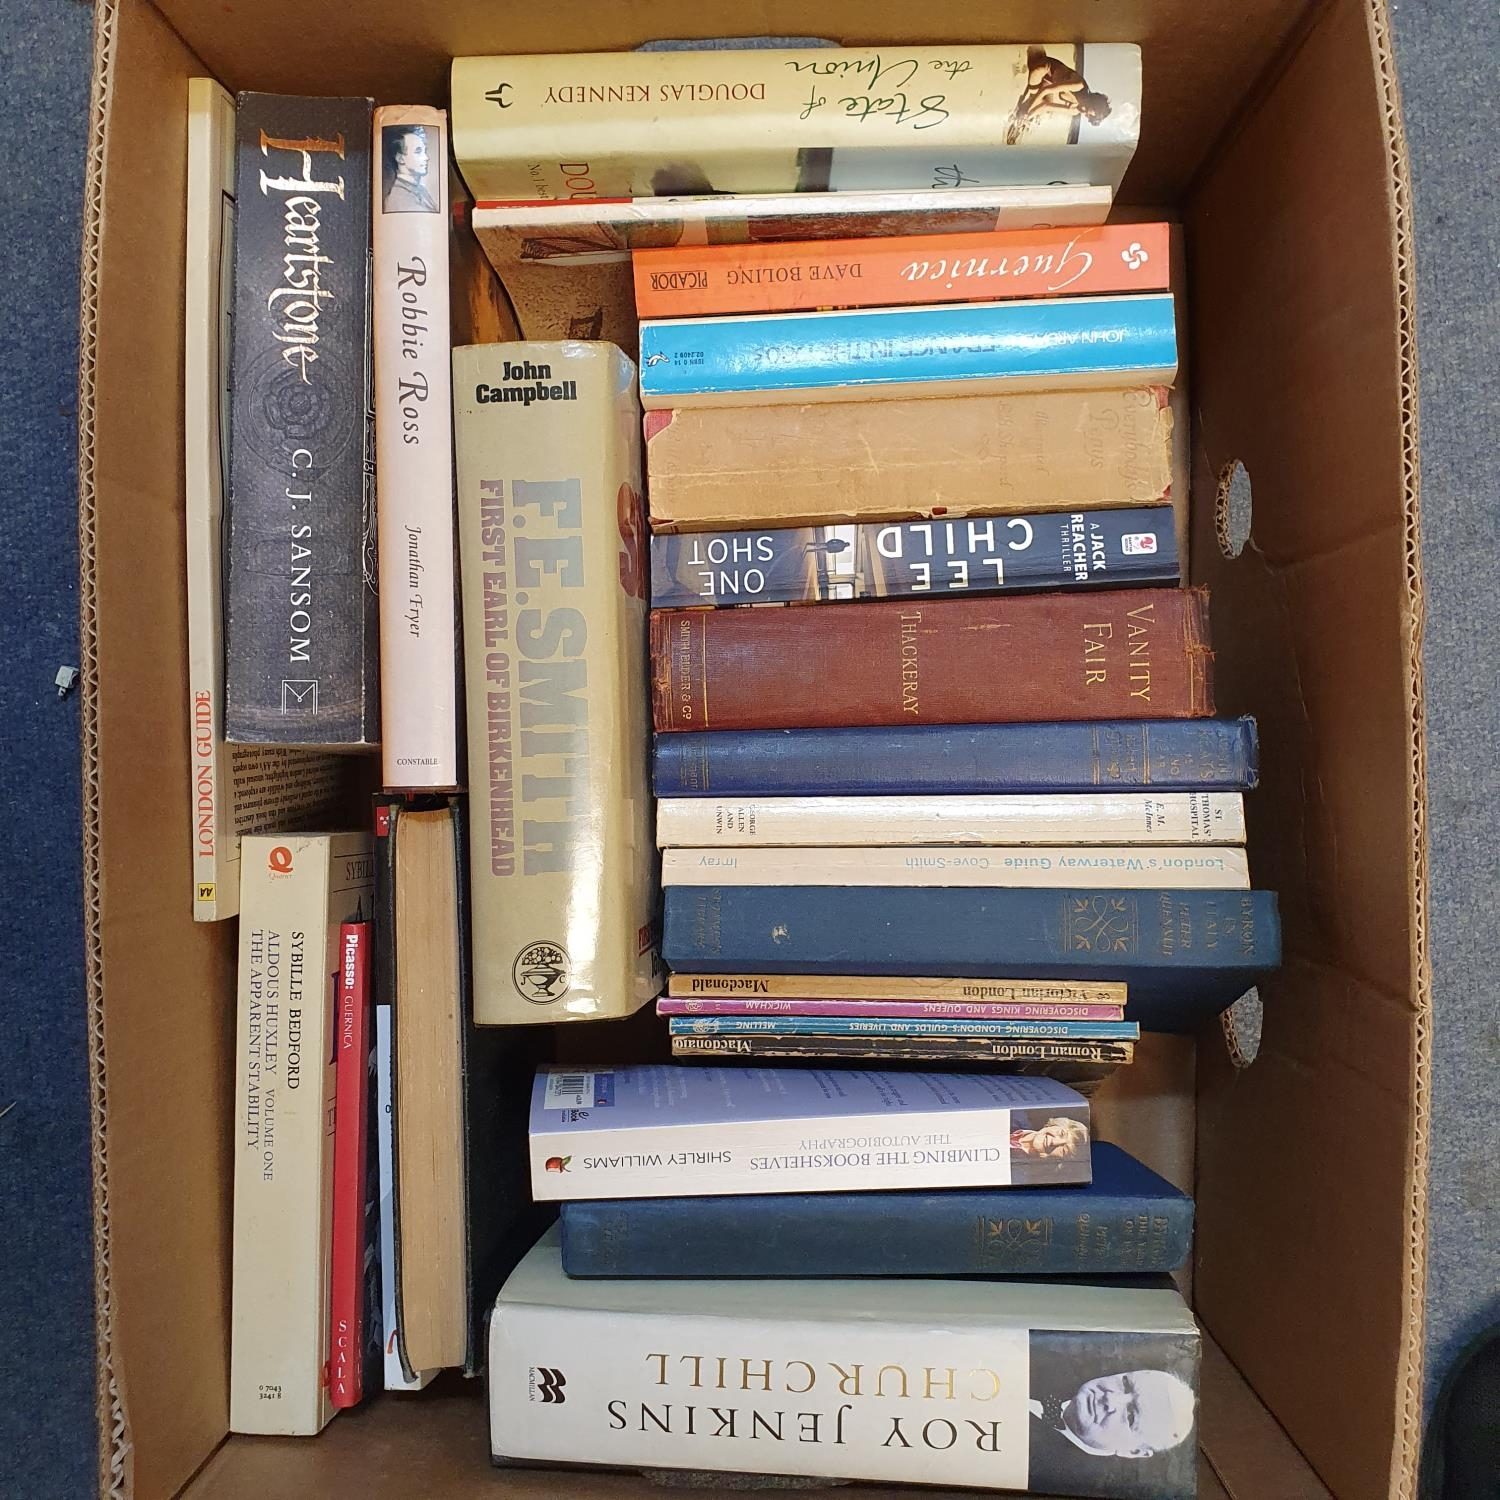 Hibbert (Christopher) London, and a large group of other books (19 boxes) - Image 19 of 21